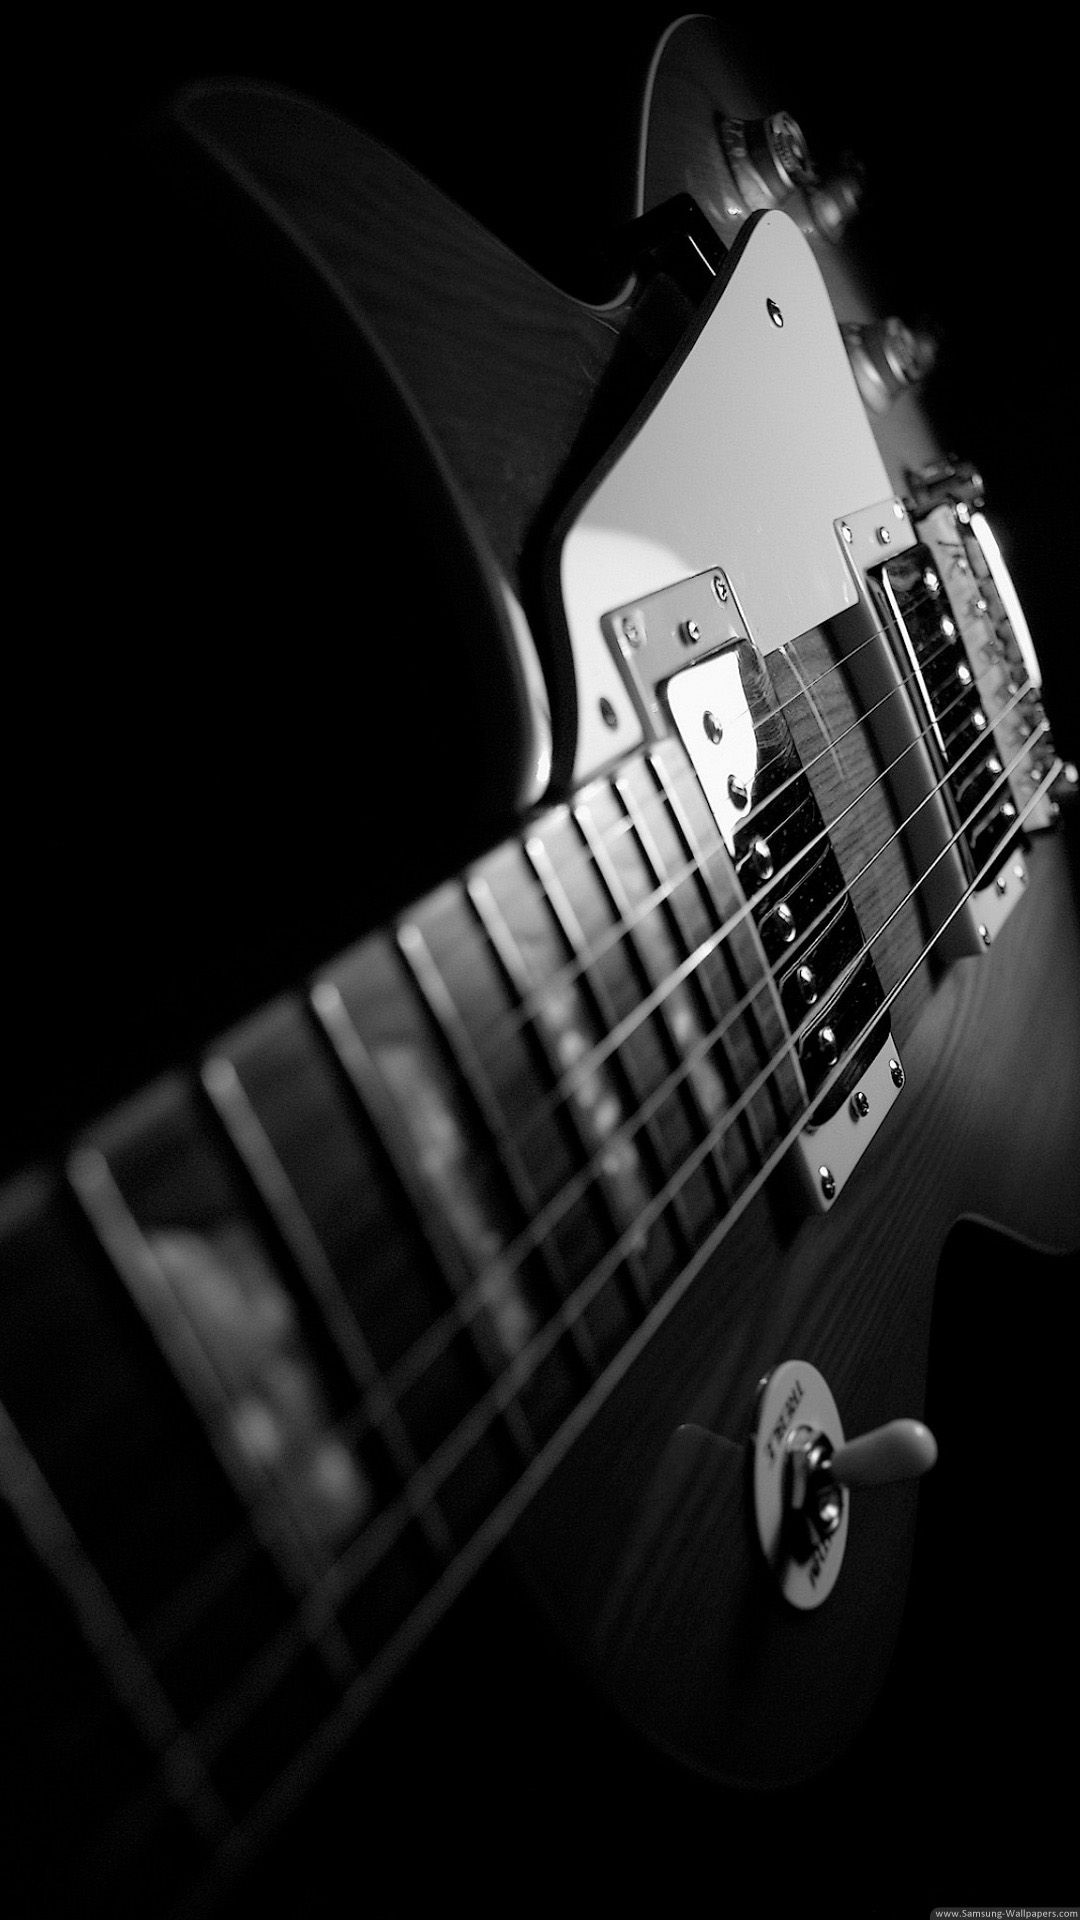 Guitars Strings Desktop 1080x1920 Hd Galaxy S4 Wallpaper Hd Samsung Wallpapers Guitar Wallpaper Iphone Music Wallpaper Guitar Photos